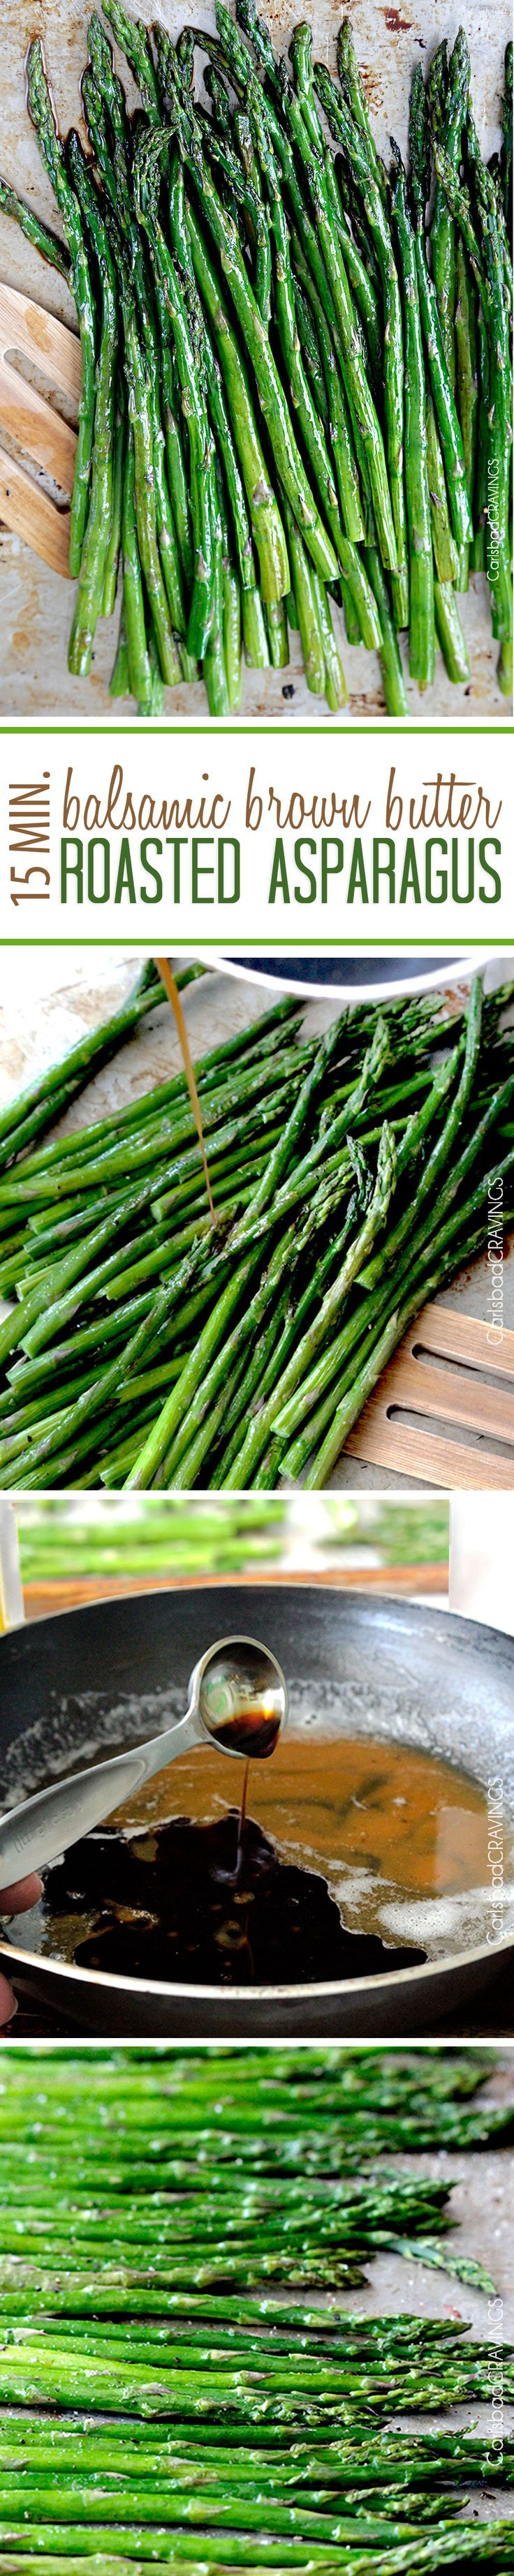 "15 Minute Balsamic Brown Butter Roasted Asparagus. You want this side ""ace"" in your back pocket! quick and easy made from pantry staples but tastes gourmet enough for any company or special occasions (like Mother's Day!)."